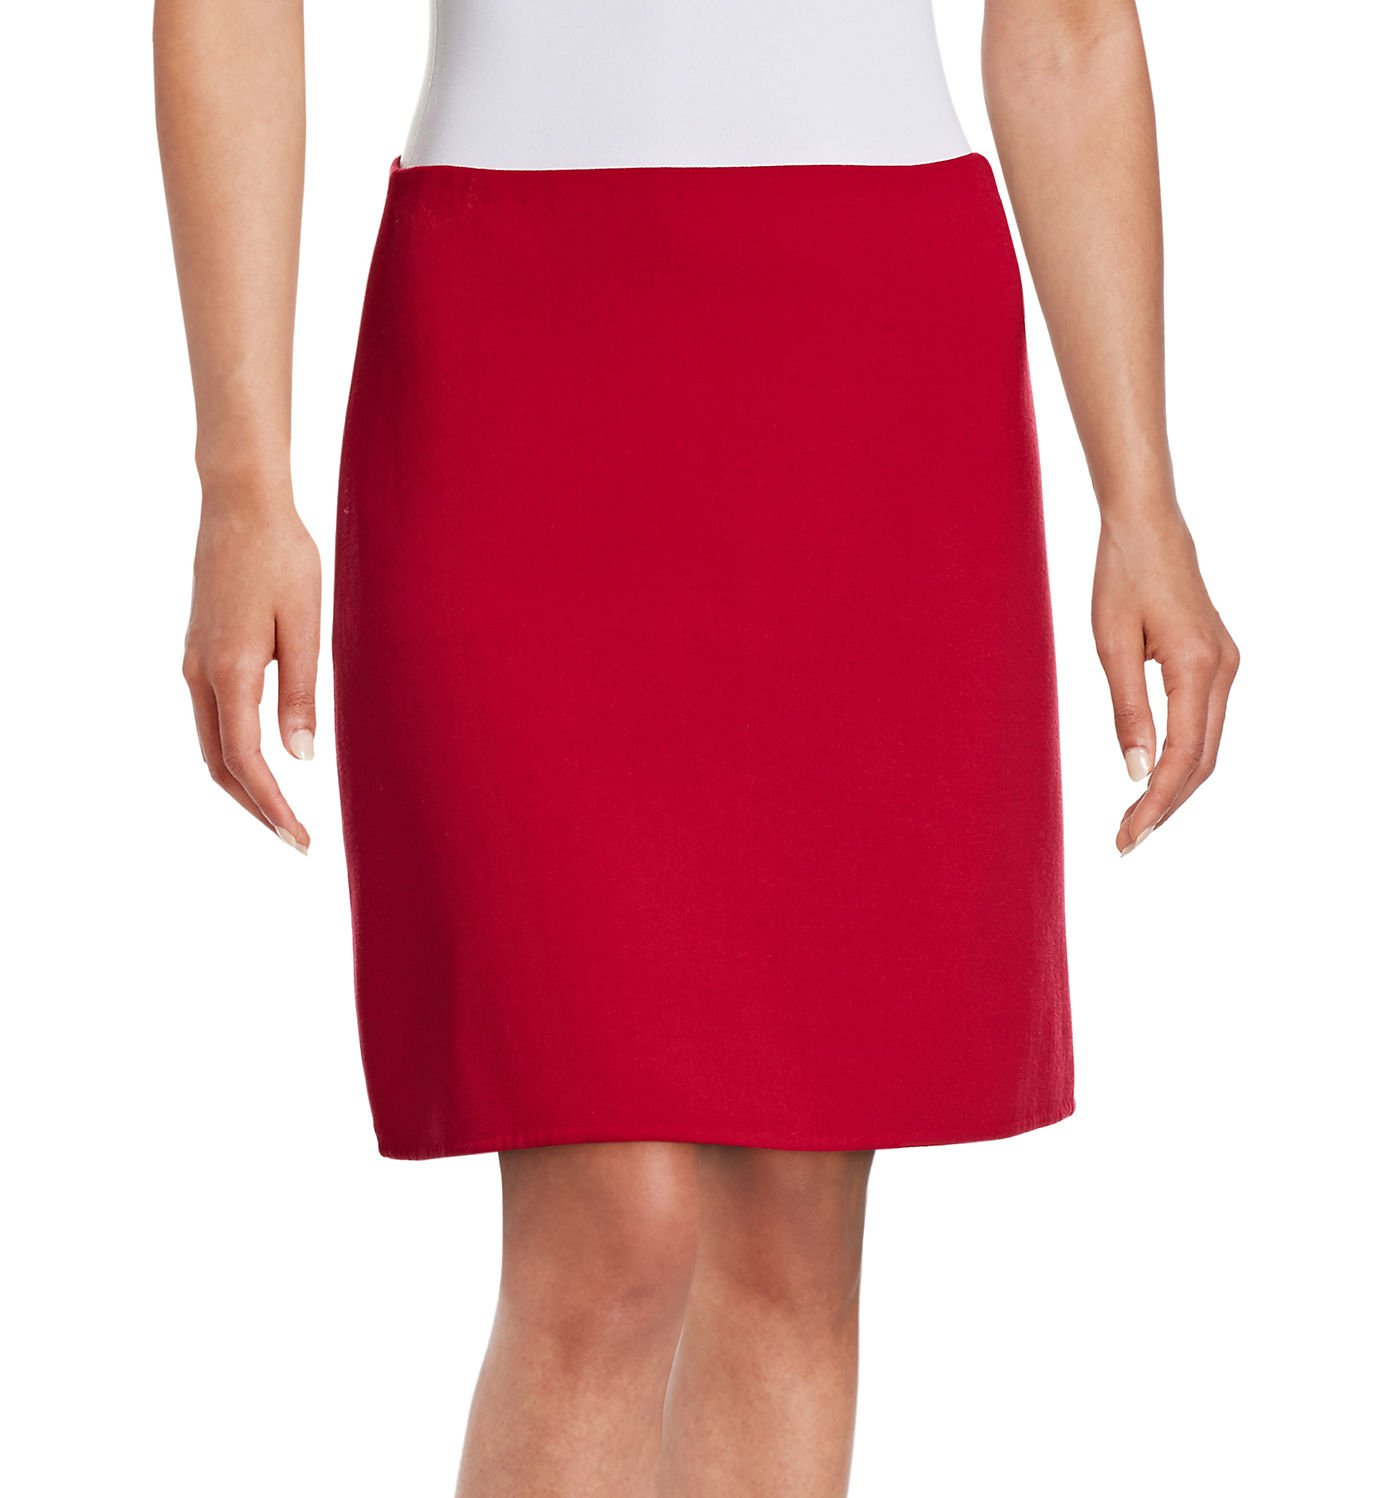 Theory Womens Irenah Saxton Virgin Wool Above Knee A-Line Skirt Red 10